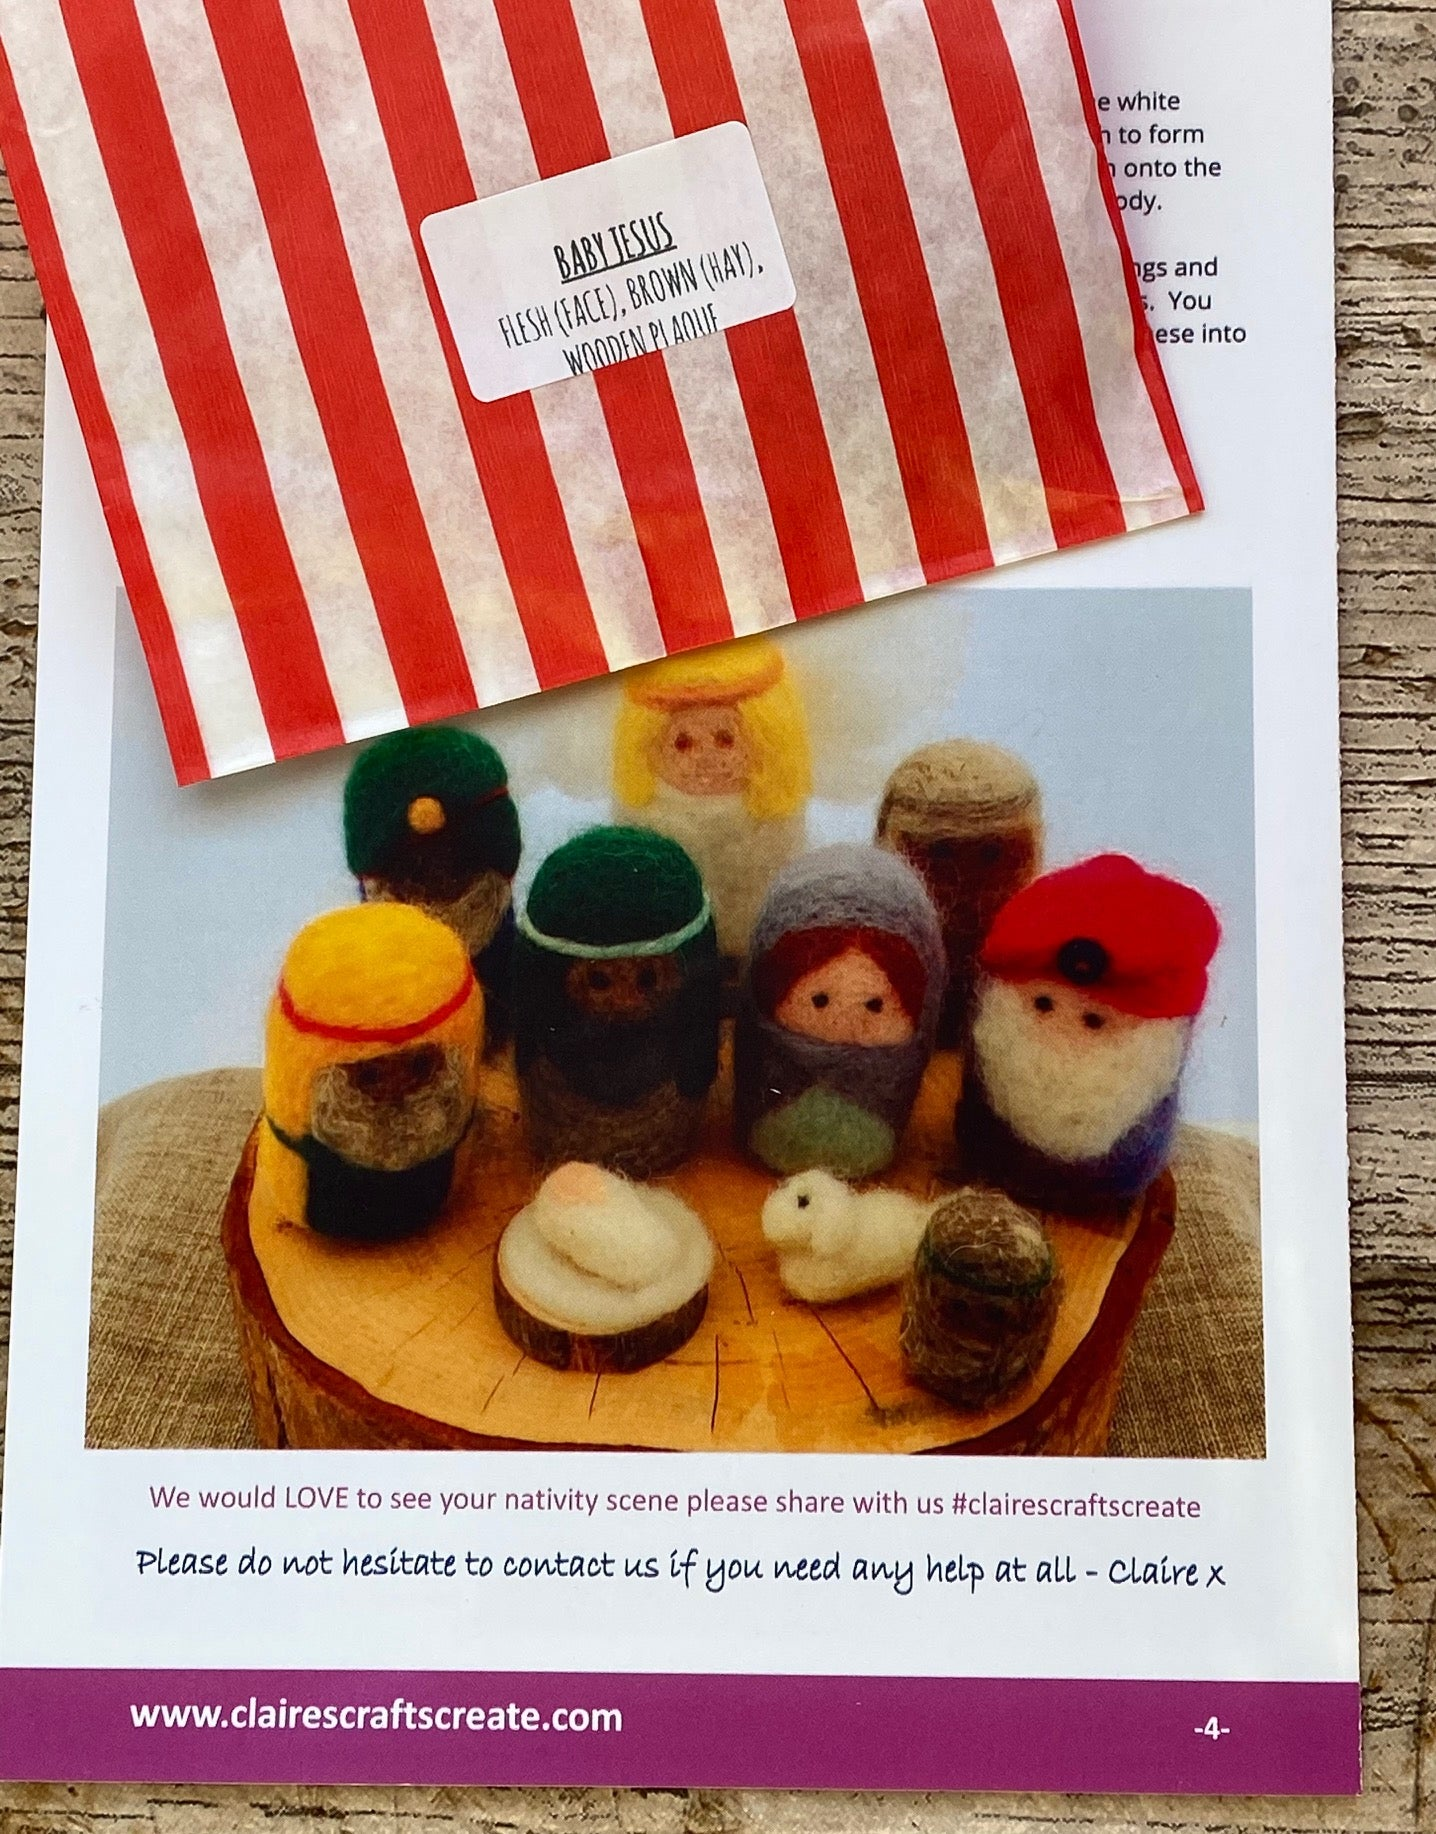 'The Nativity' Needle Felting Kit